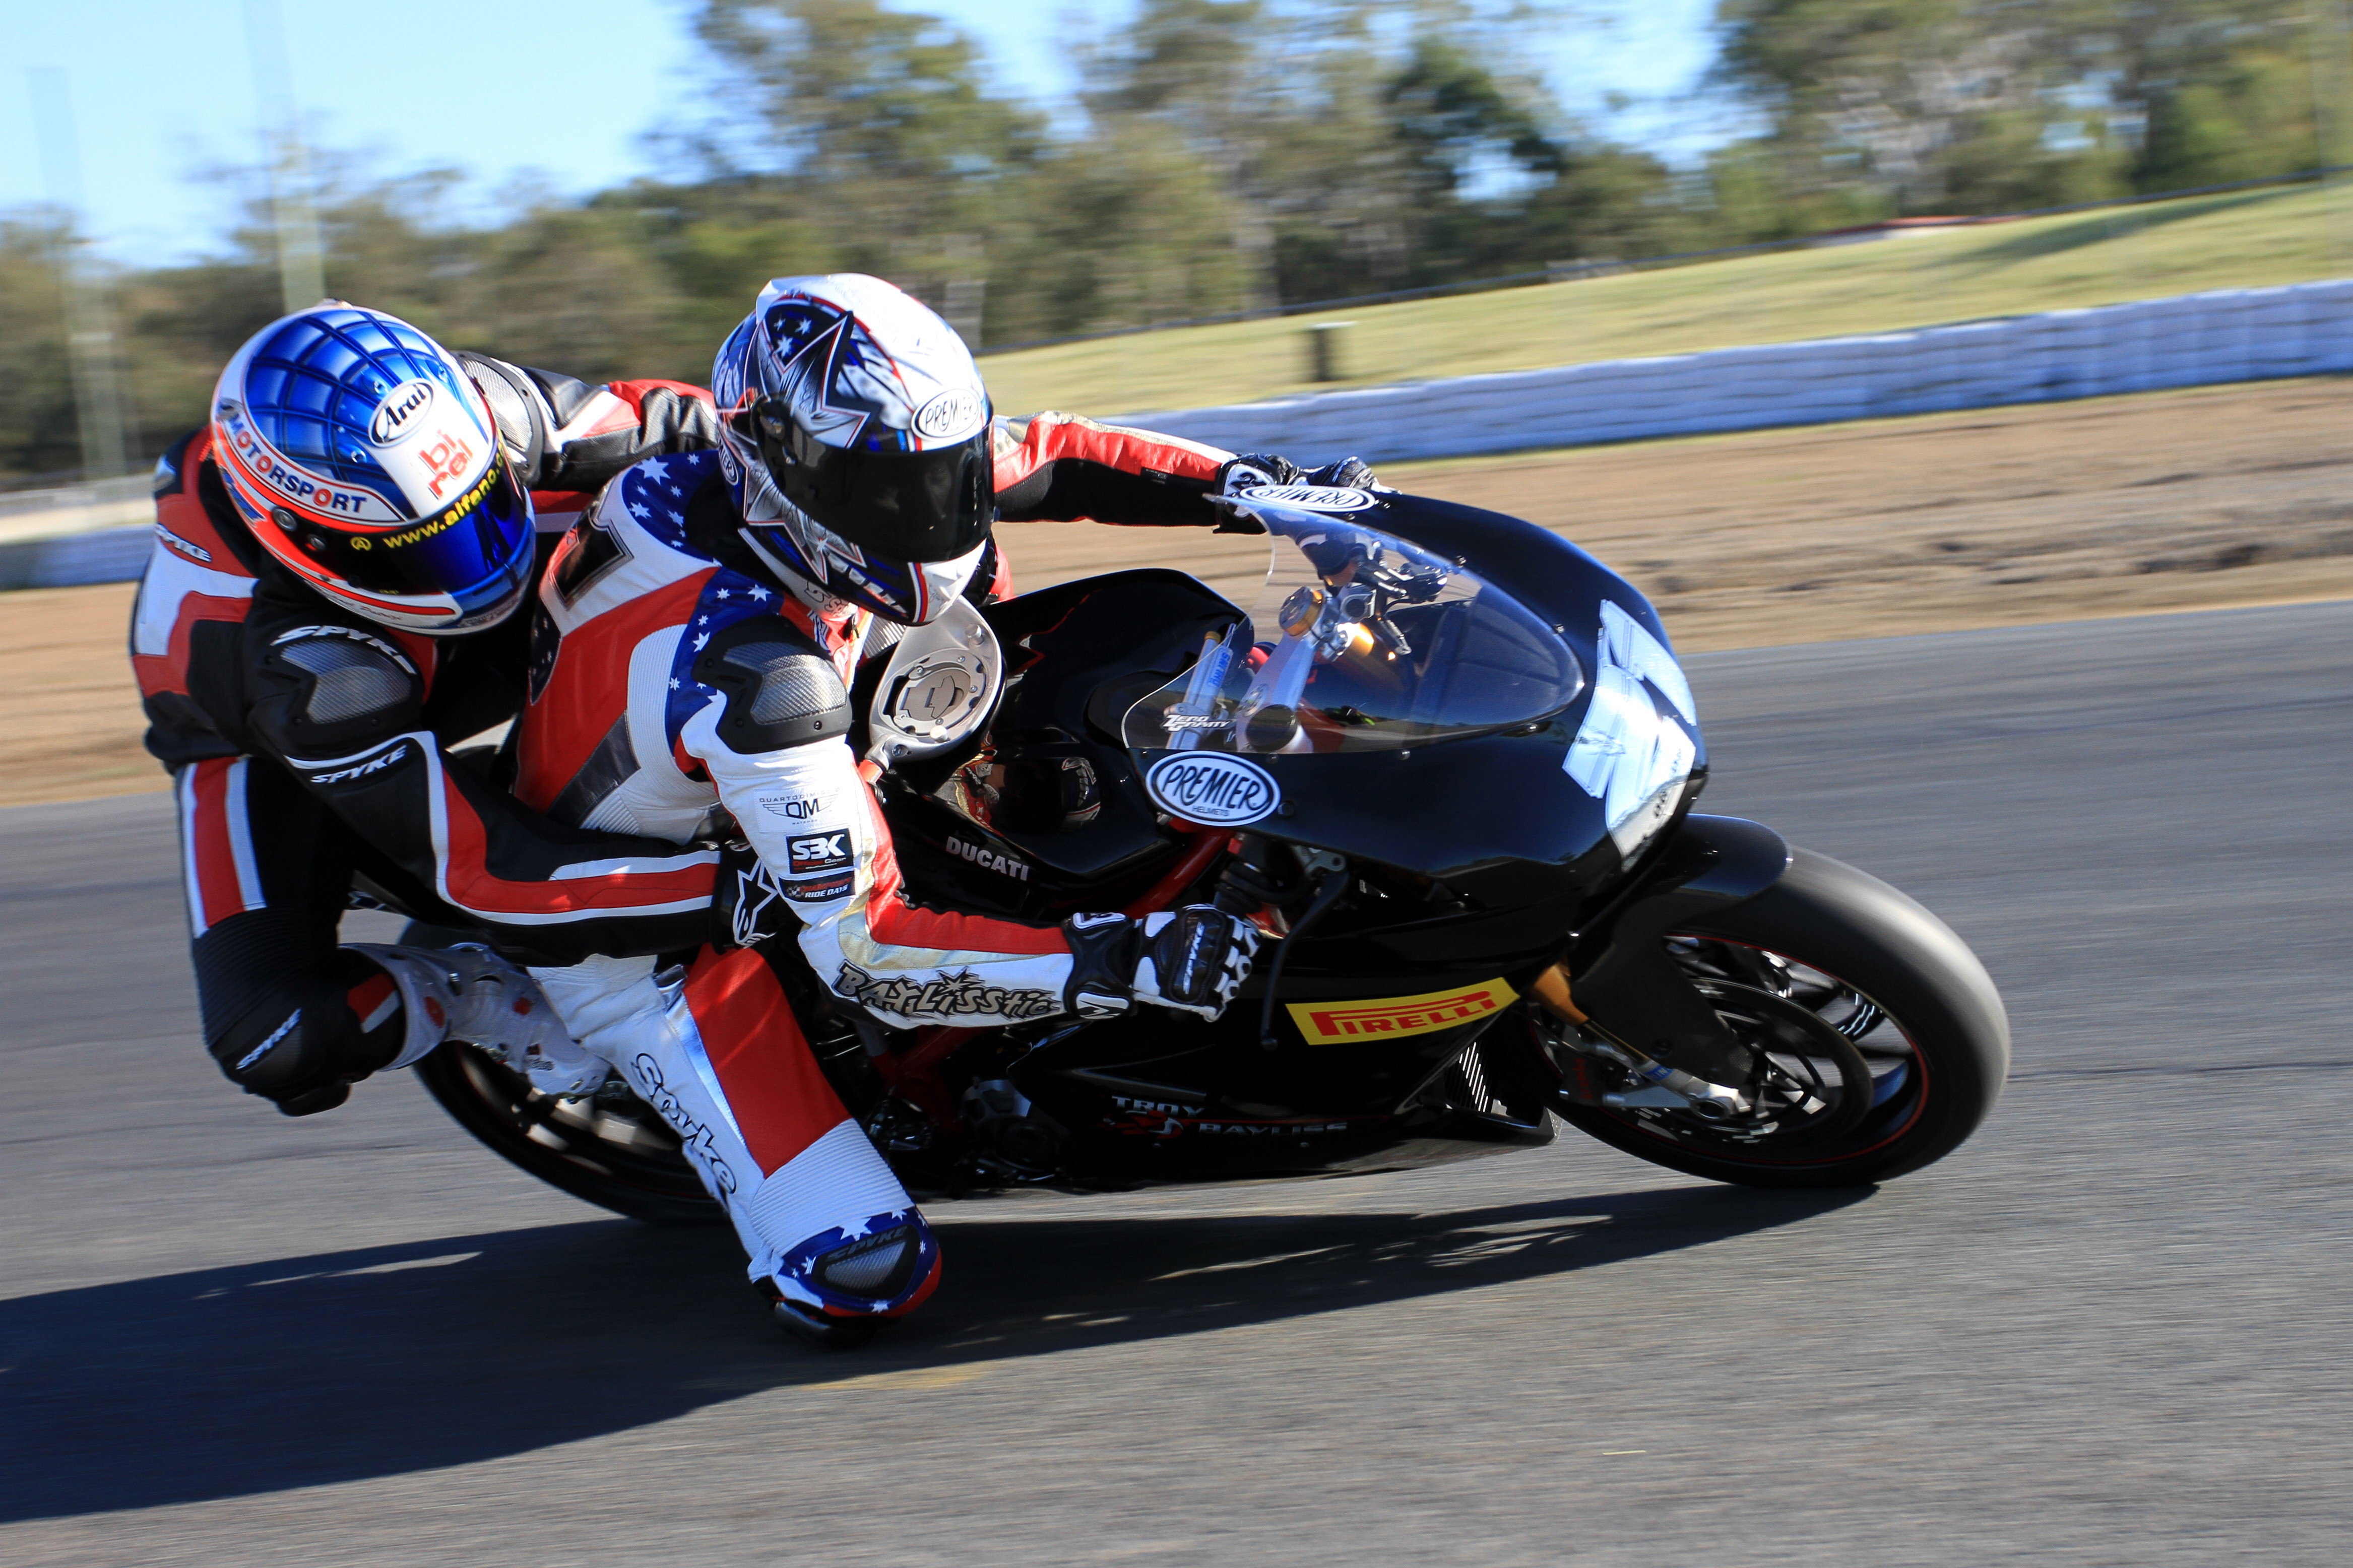 Troy Bayliss offers experience of a lifetime